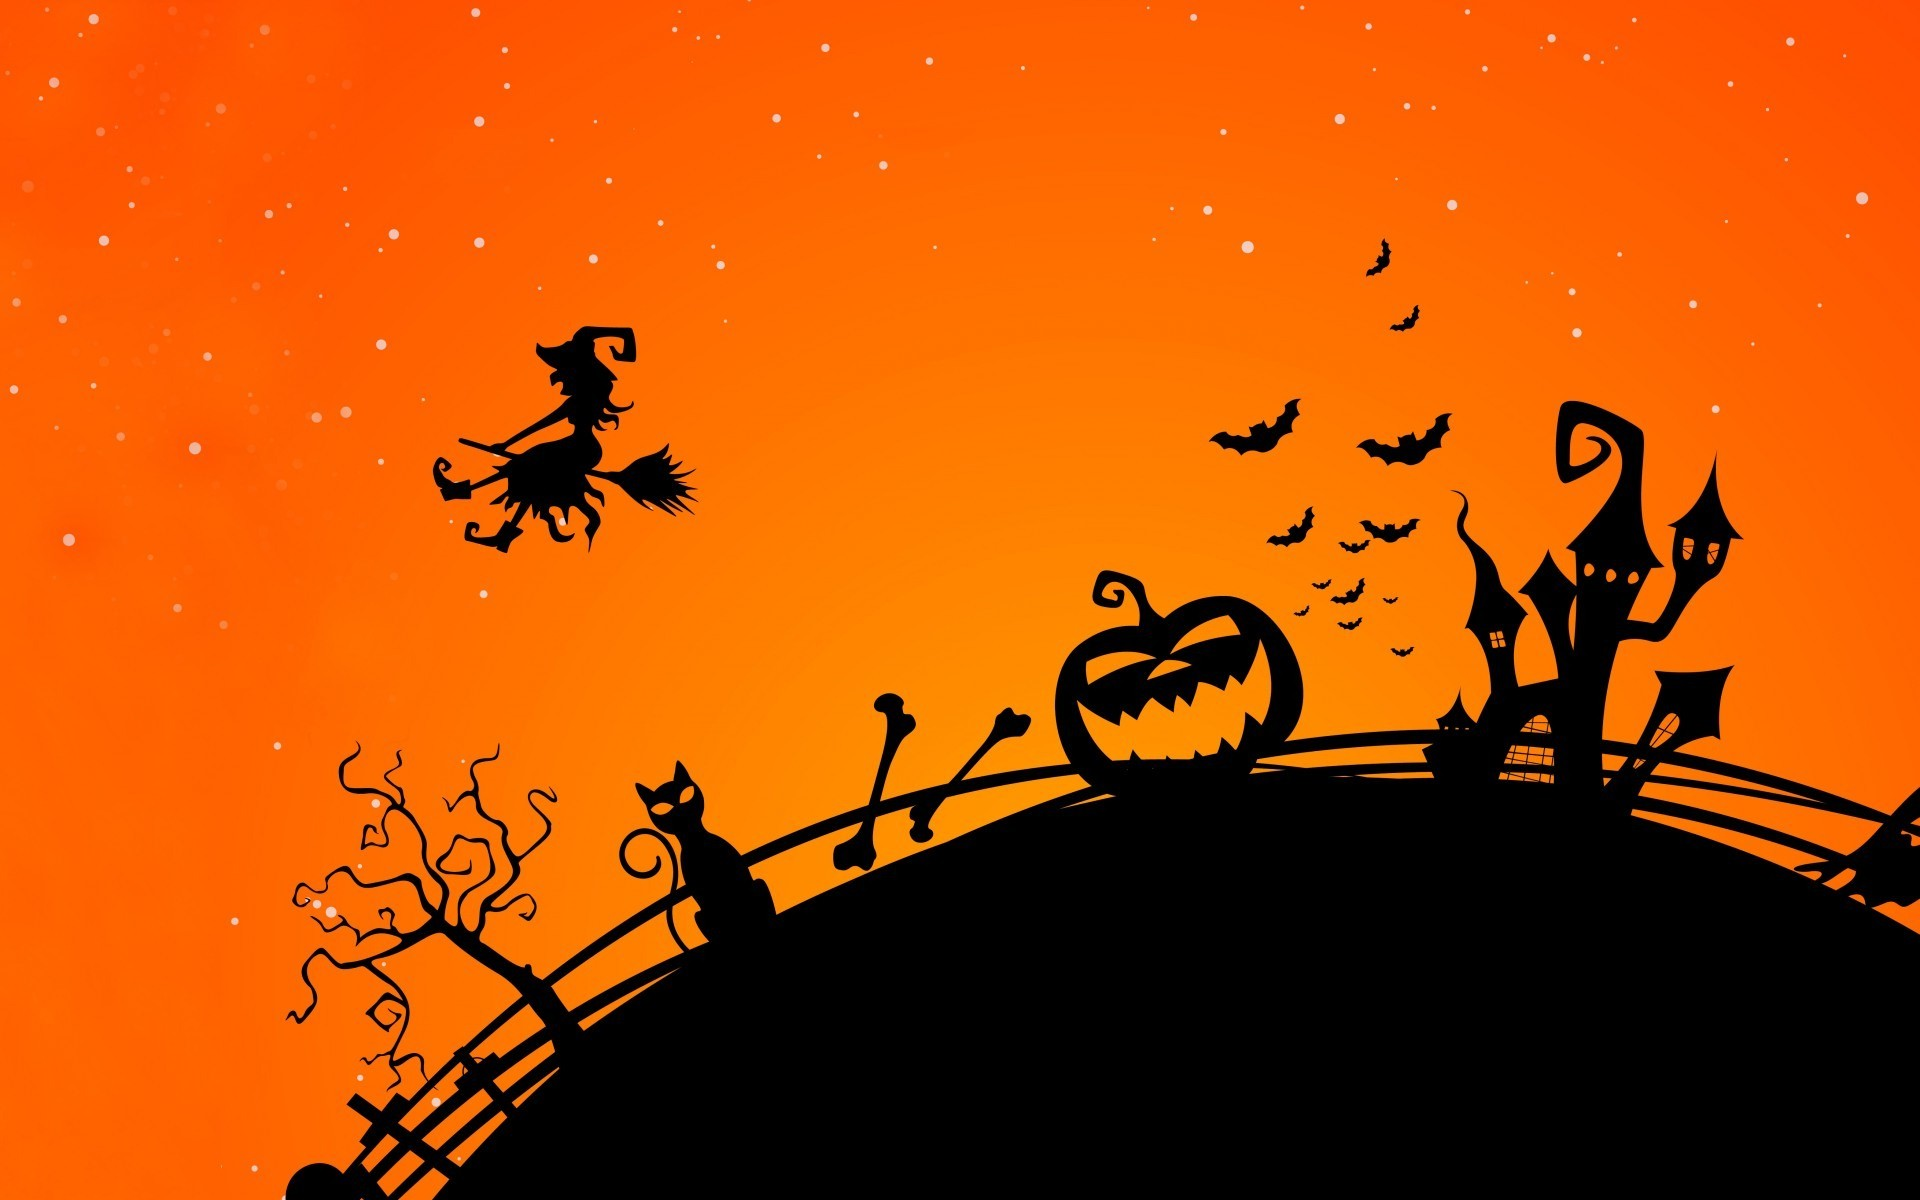 Animated Halloween wallpaper | Animated Happy Halloween Images, Pictures,  Photos, HD Wallpapers